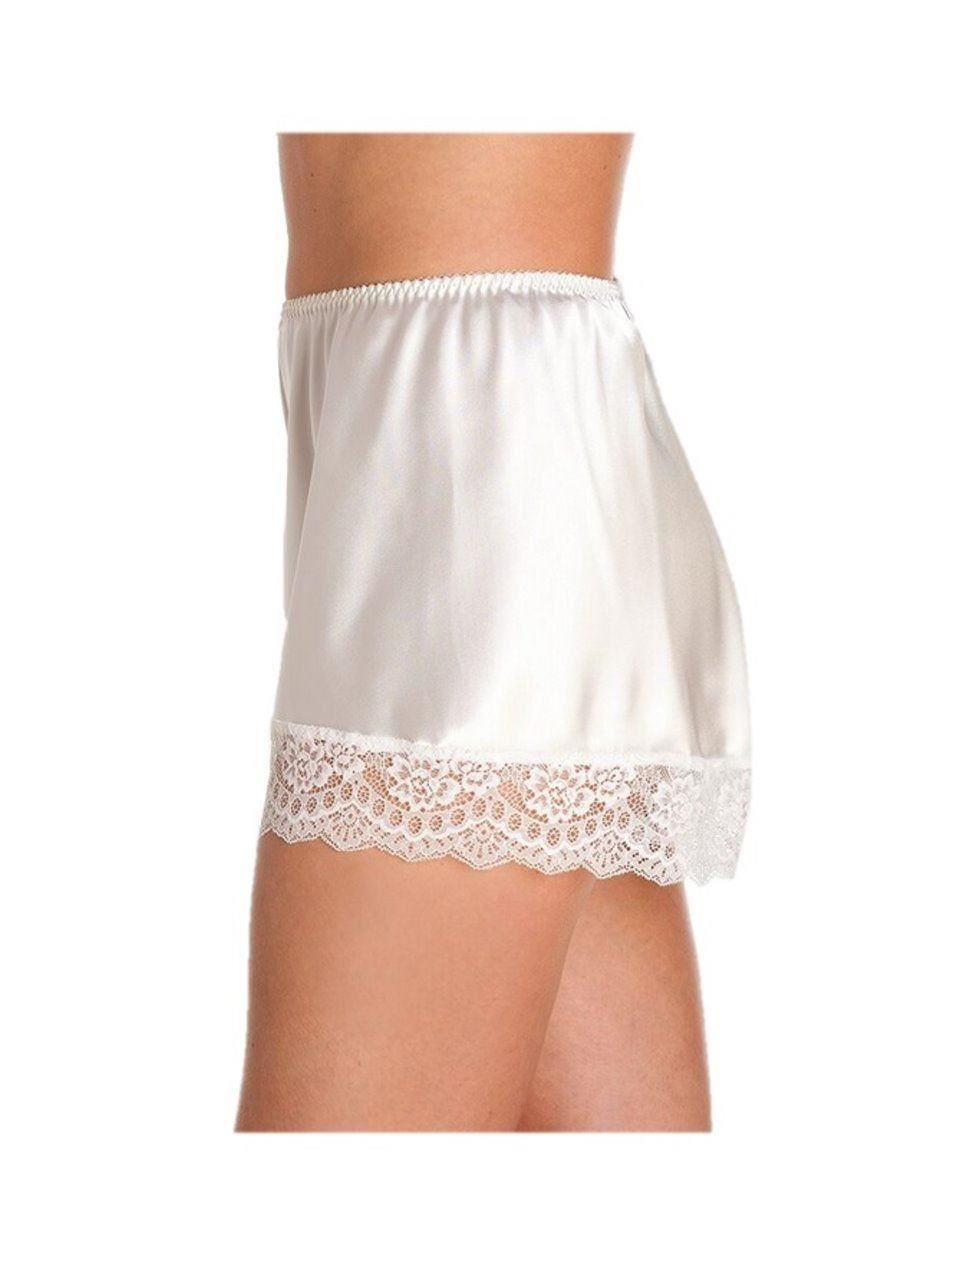 British Made Retro Satin Lace Detail Silky french knicker Short briefs